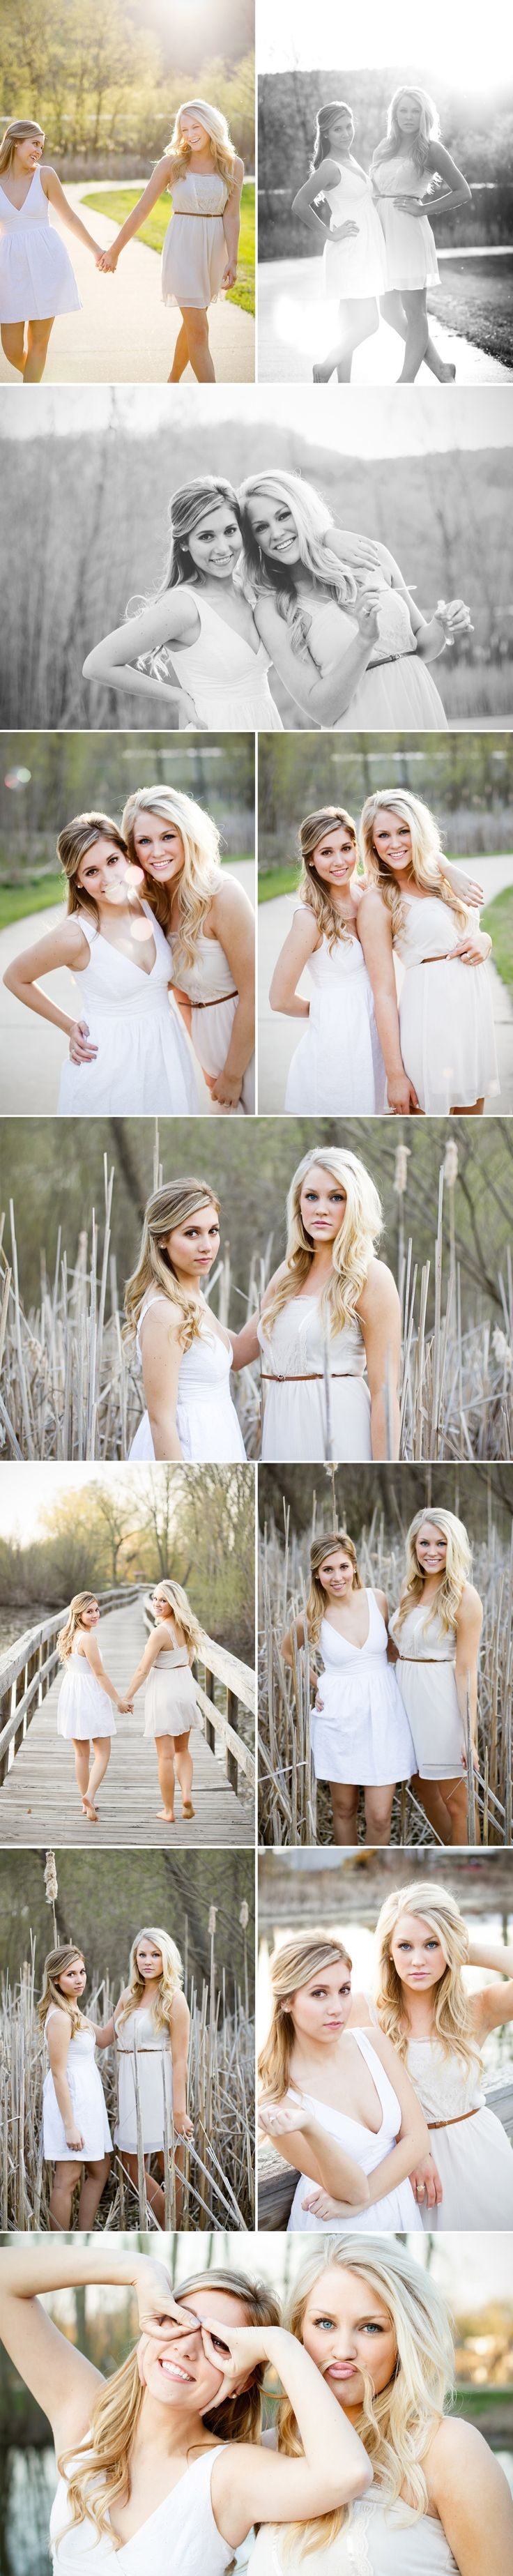 best friend ideas.... :) we should do something like with our senior pictures